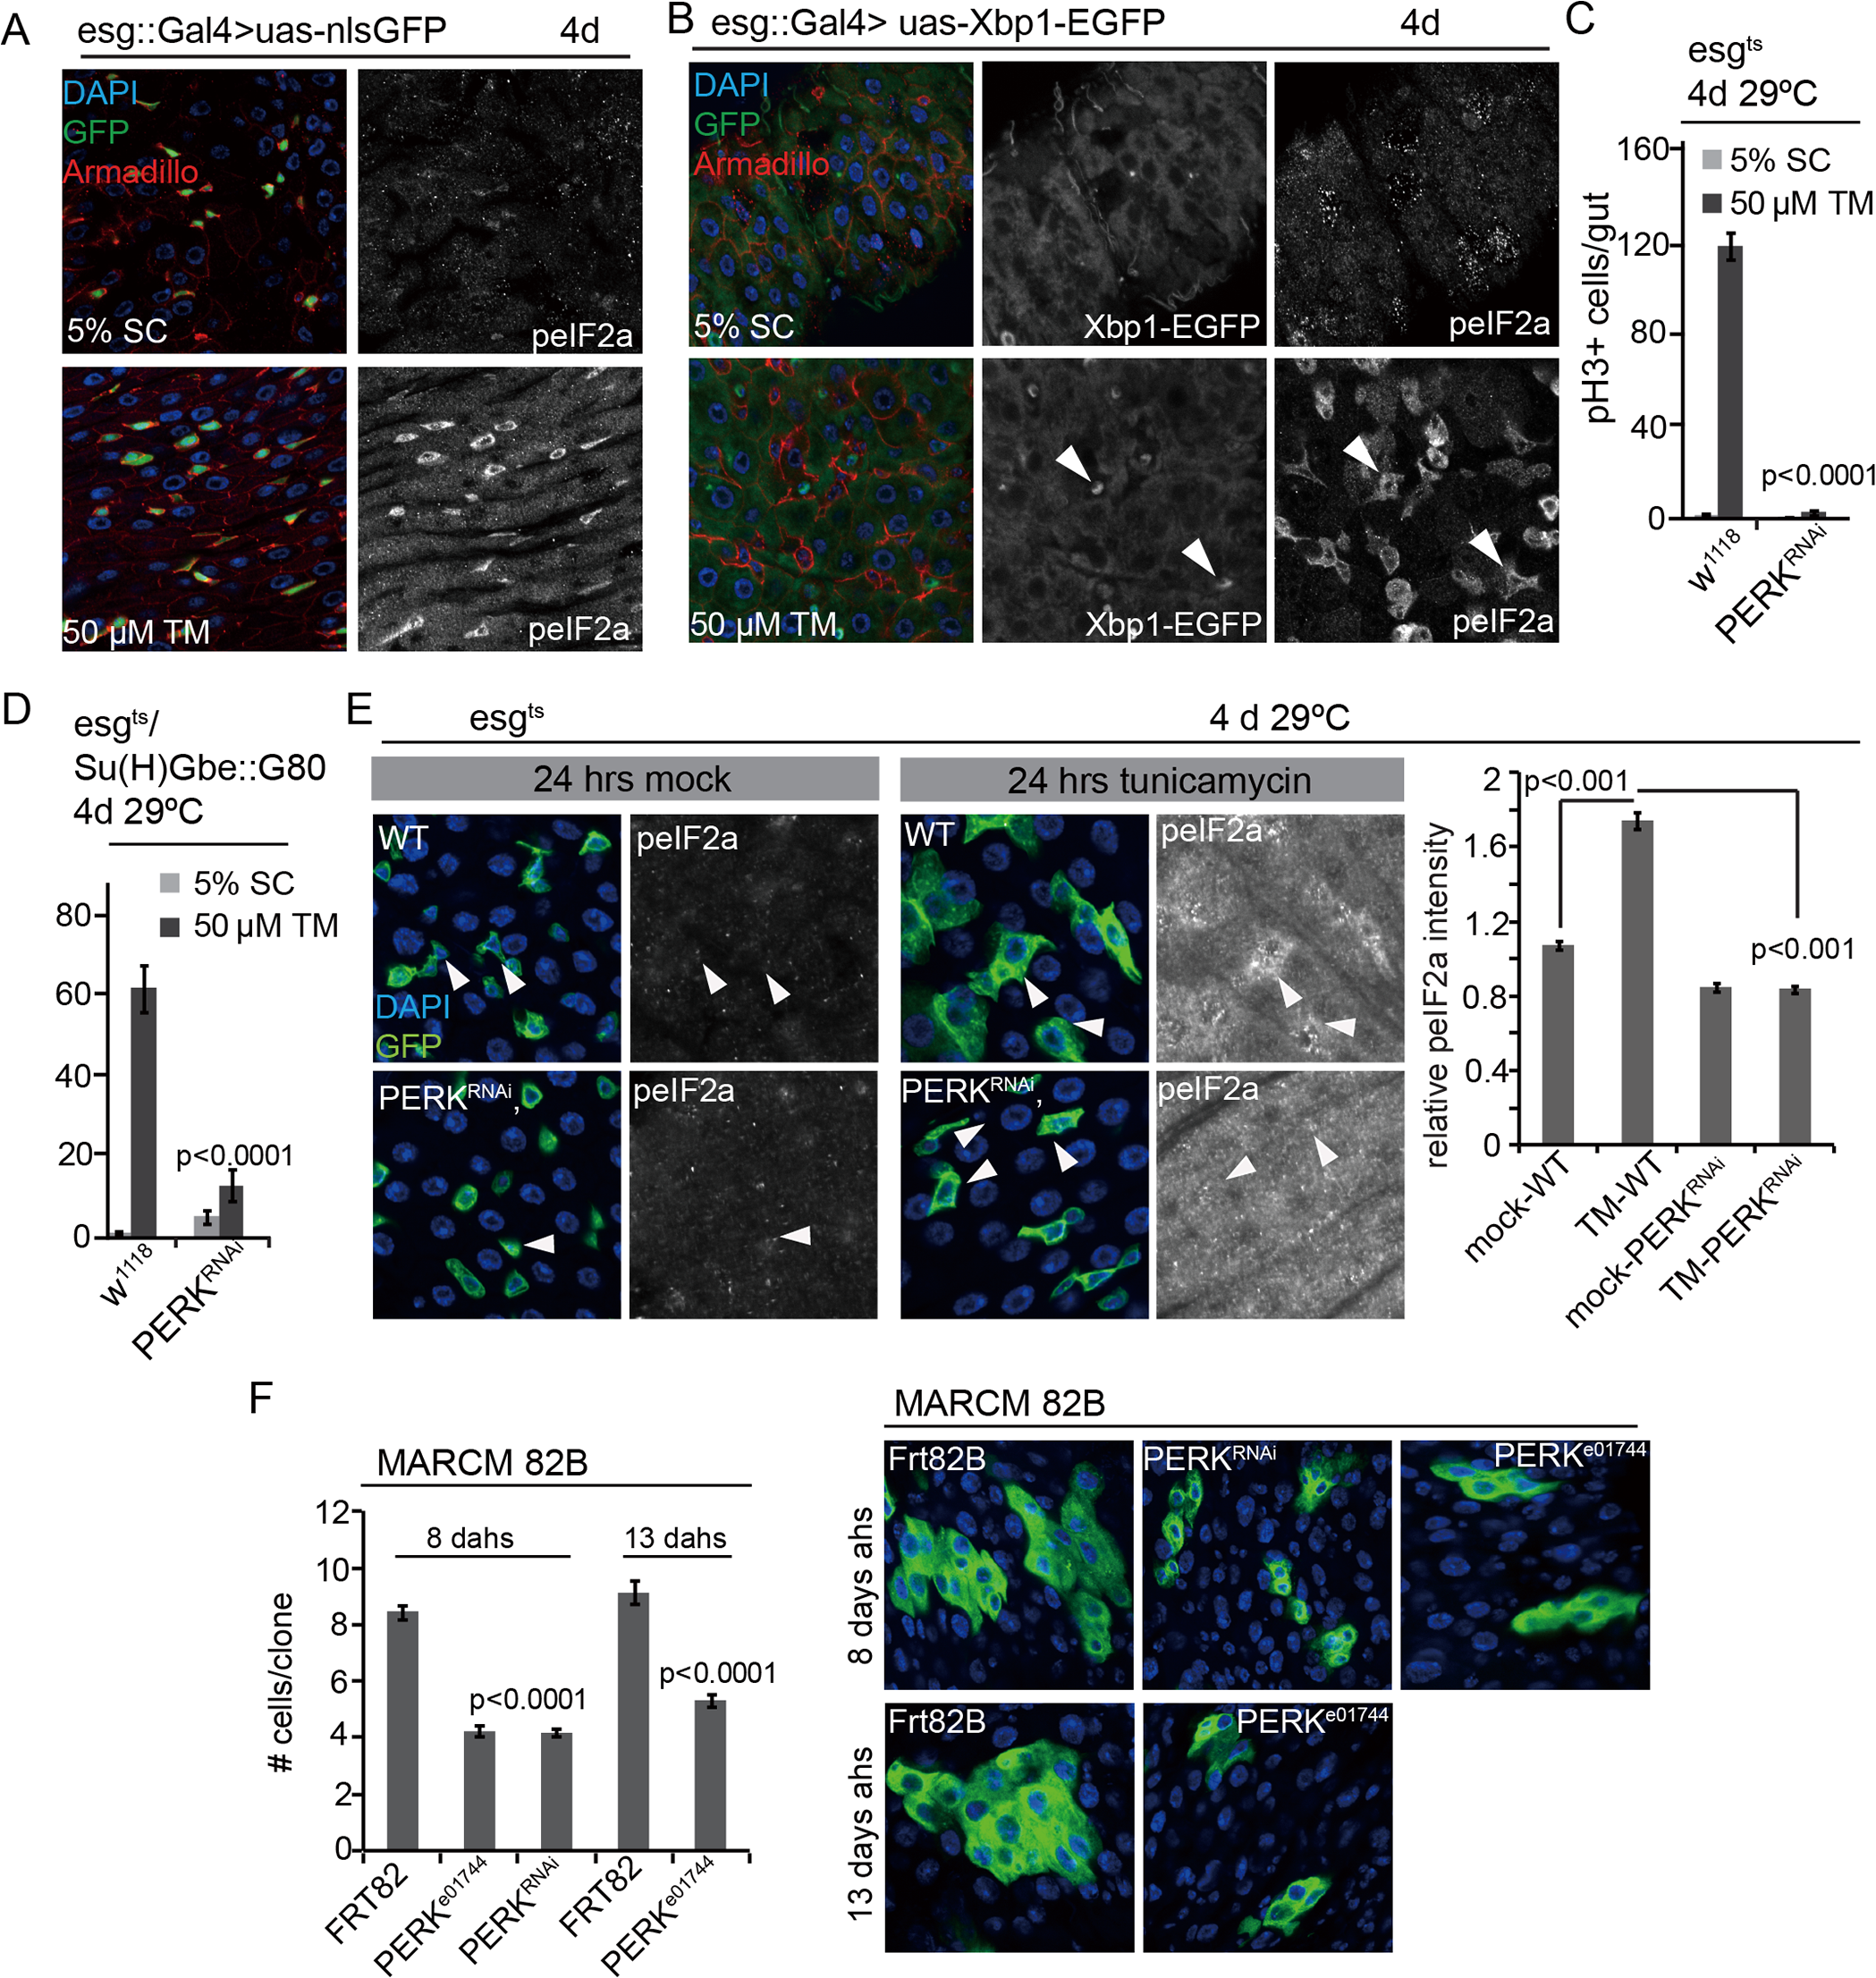 PERK integrates local and tissue-wide ER stress responses to regulate ISC proliferation.